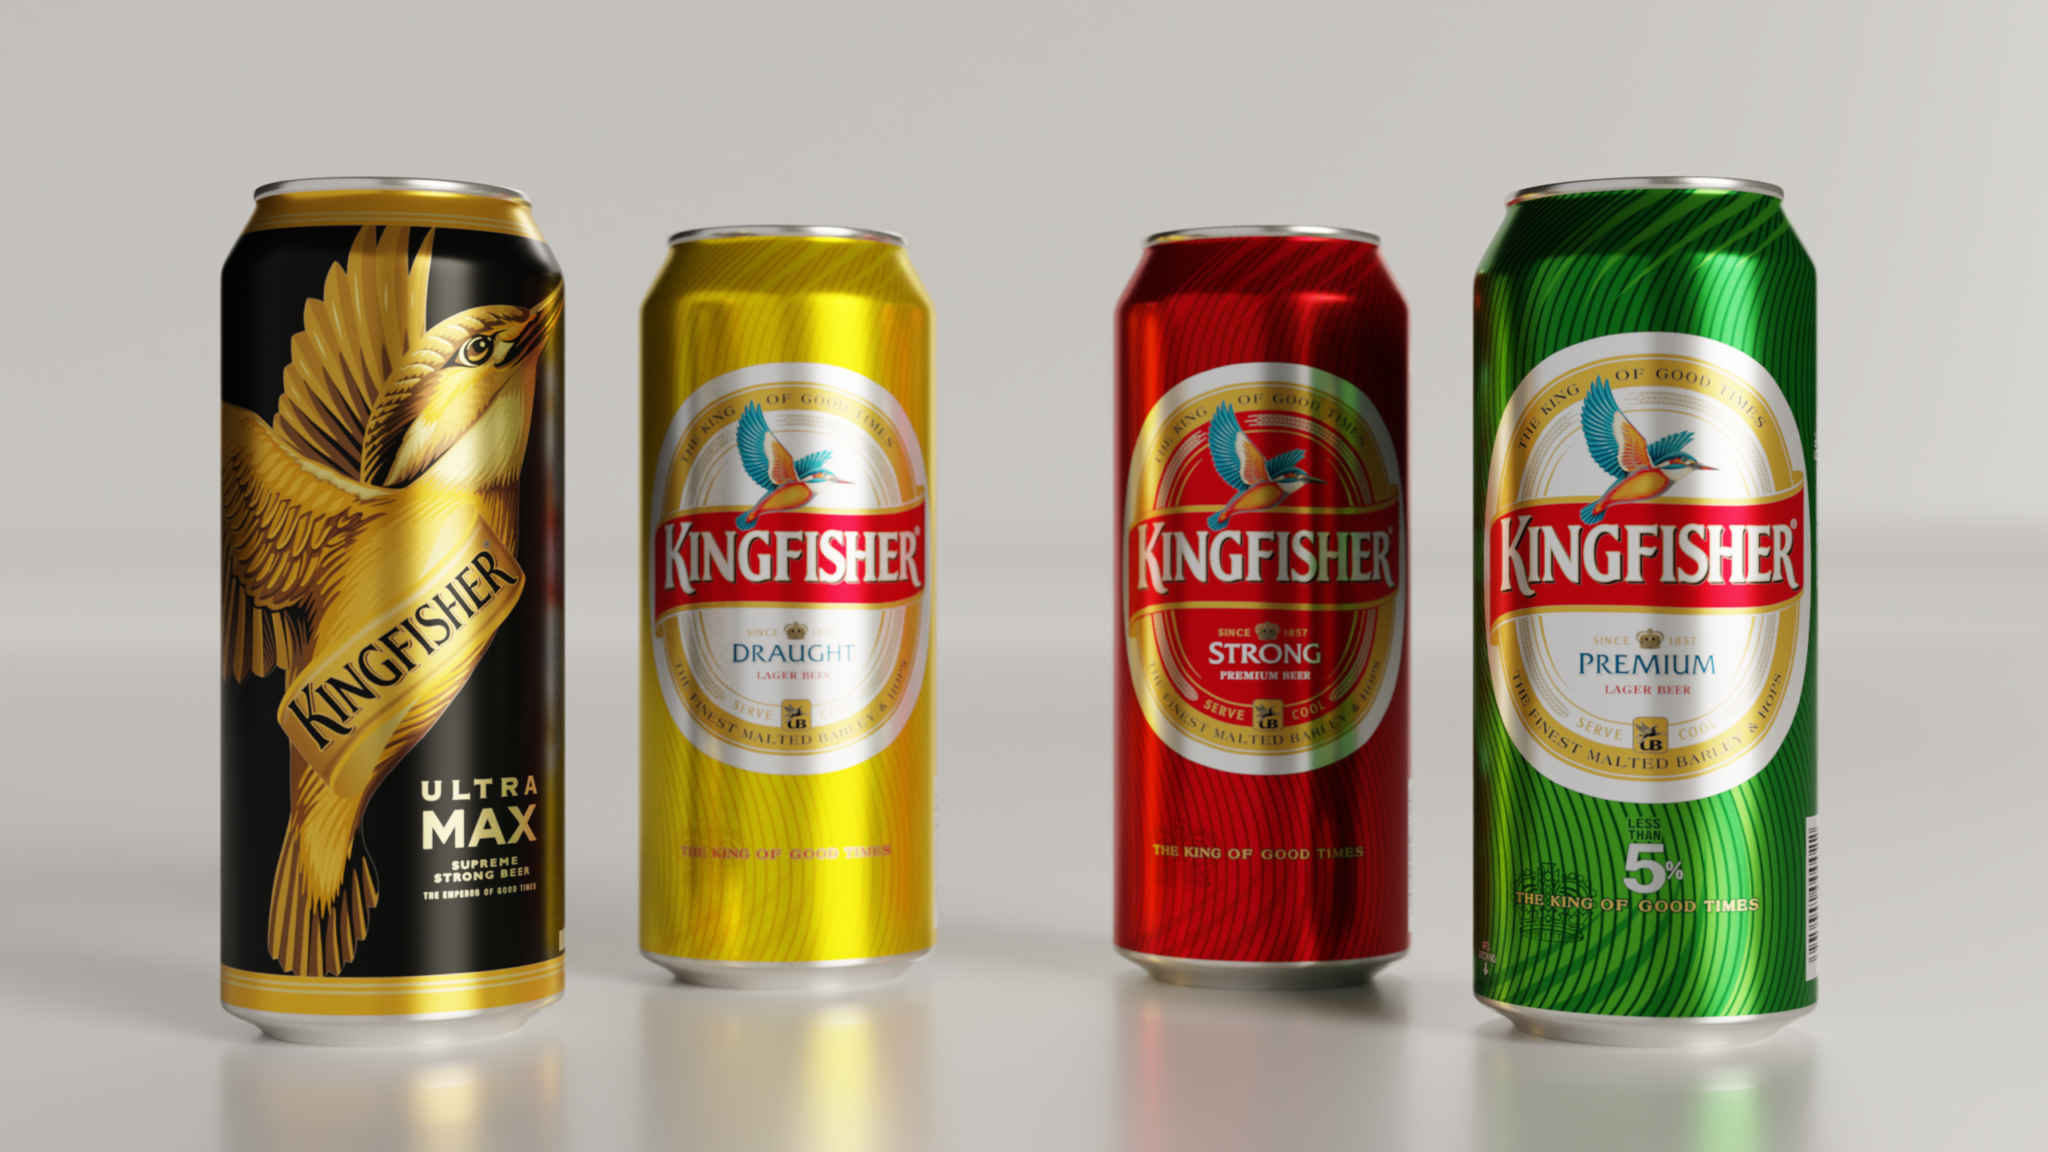 Kingfisher cans lined up